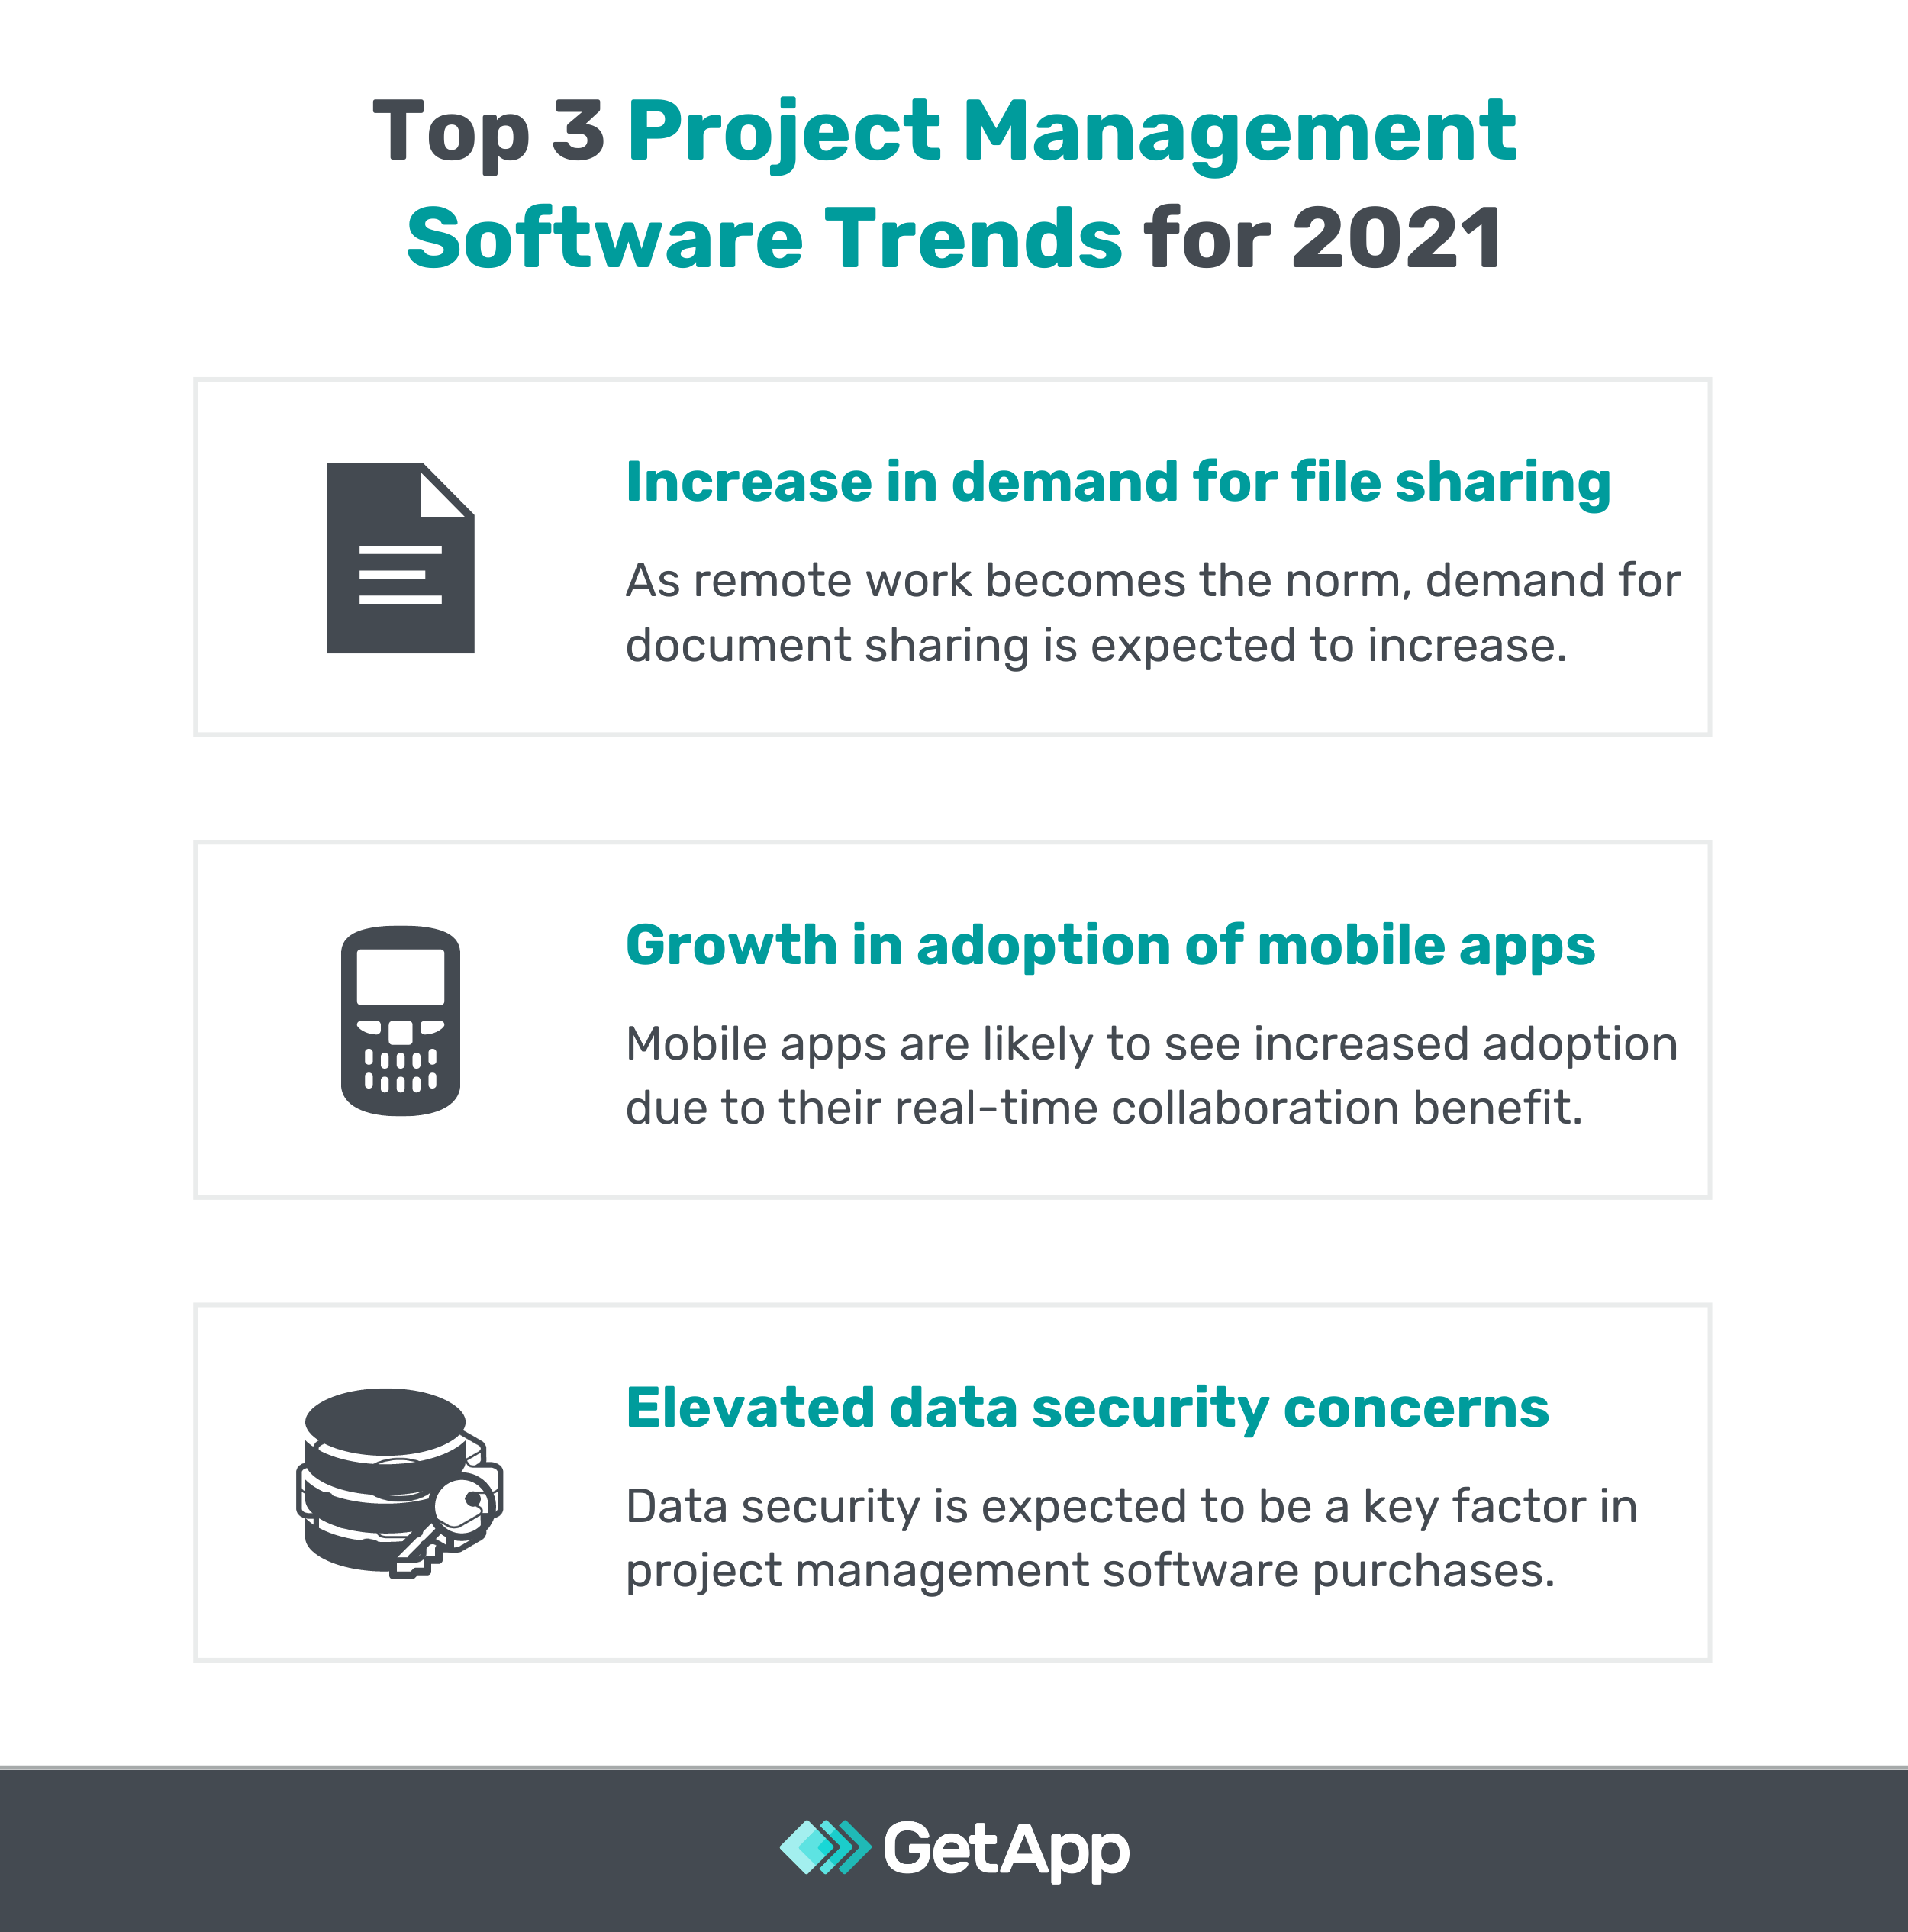 Top 3 project management software trends for 2021